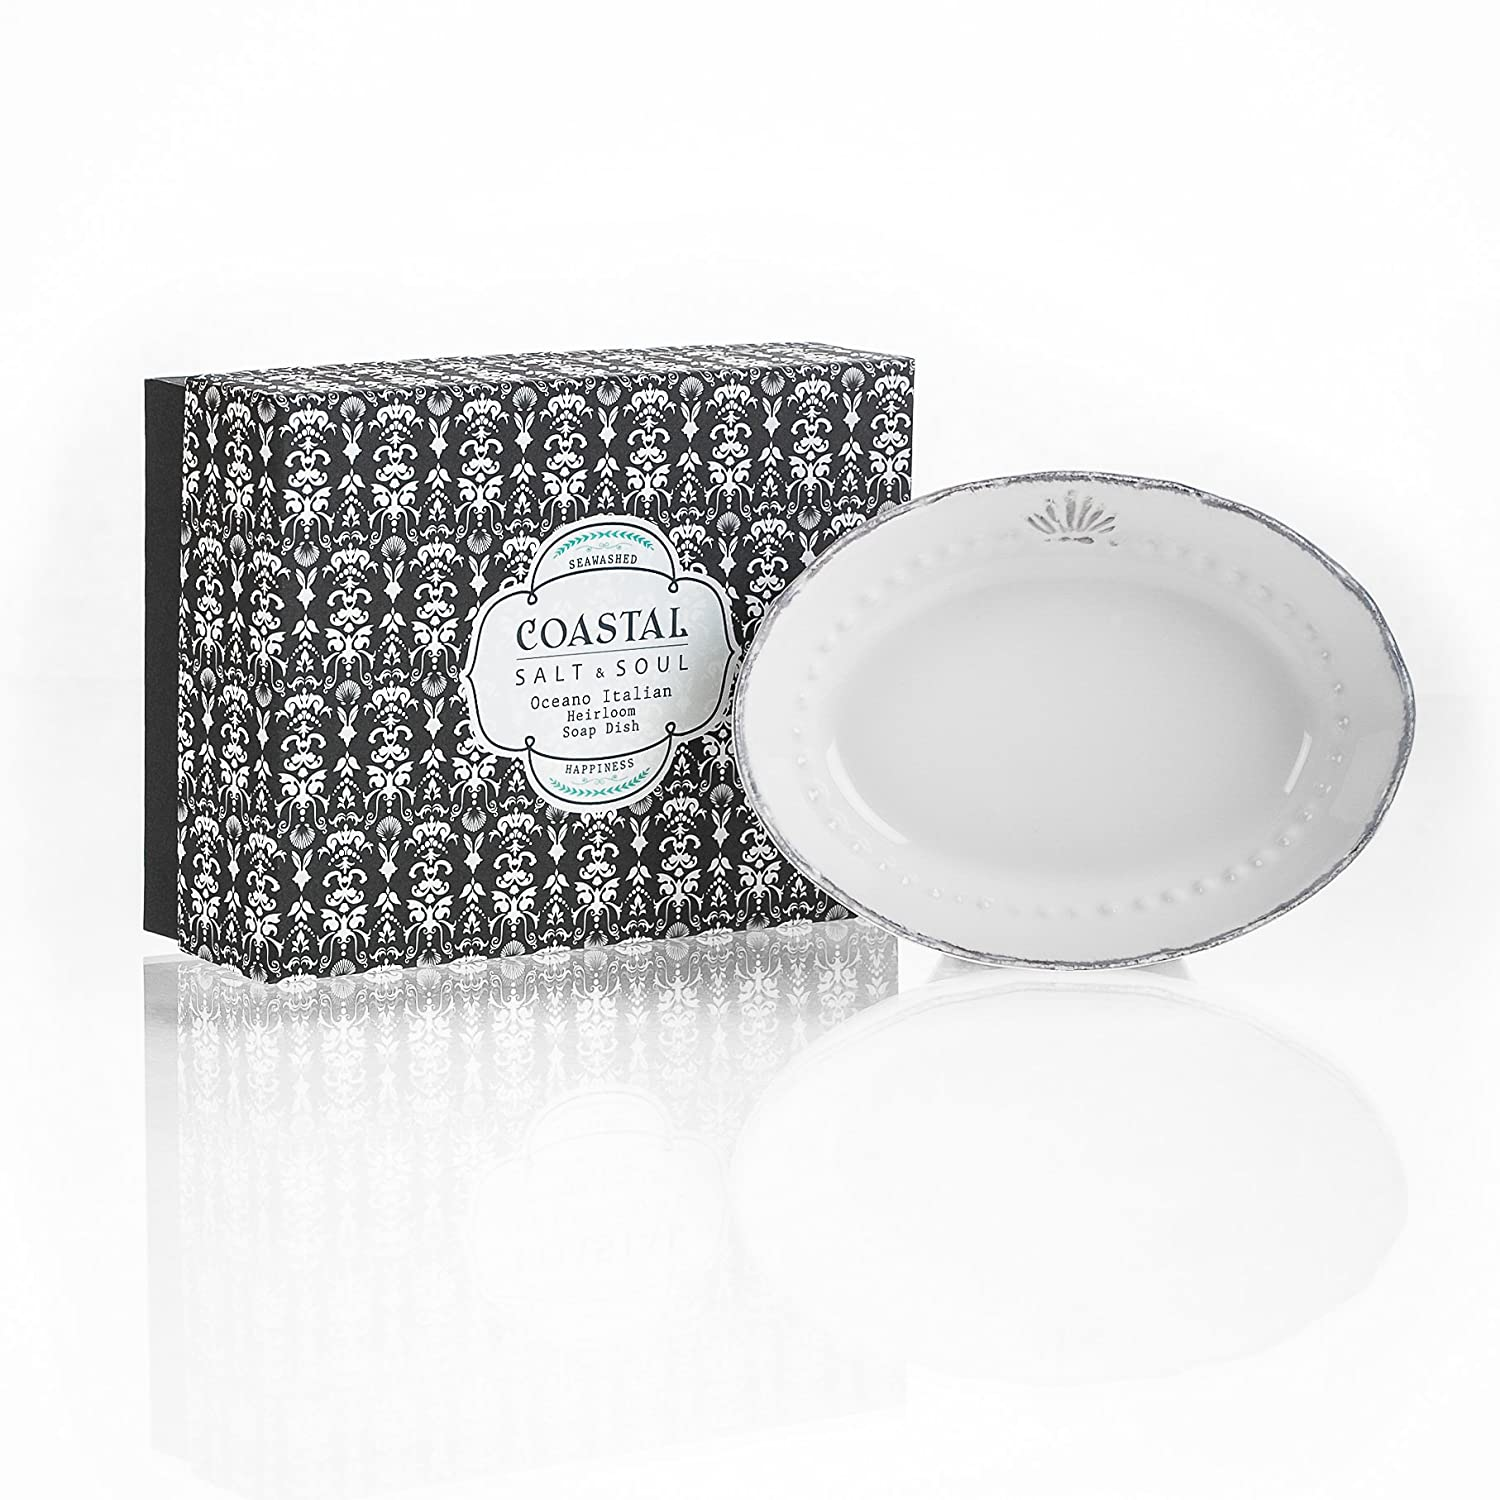 Amazon.com : Coastal Salt & Soul Oceano italian heirloom soap dish ...